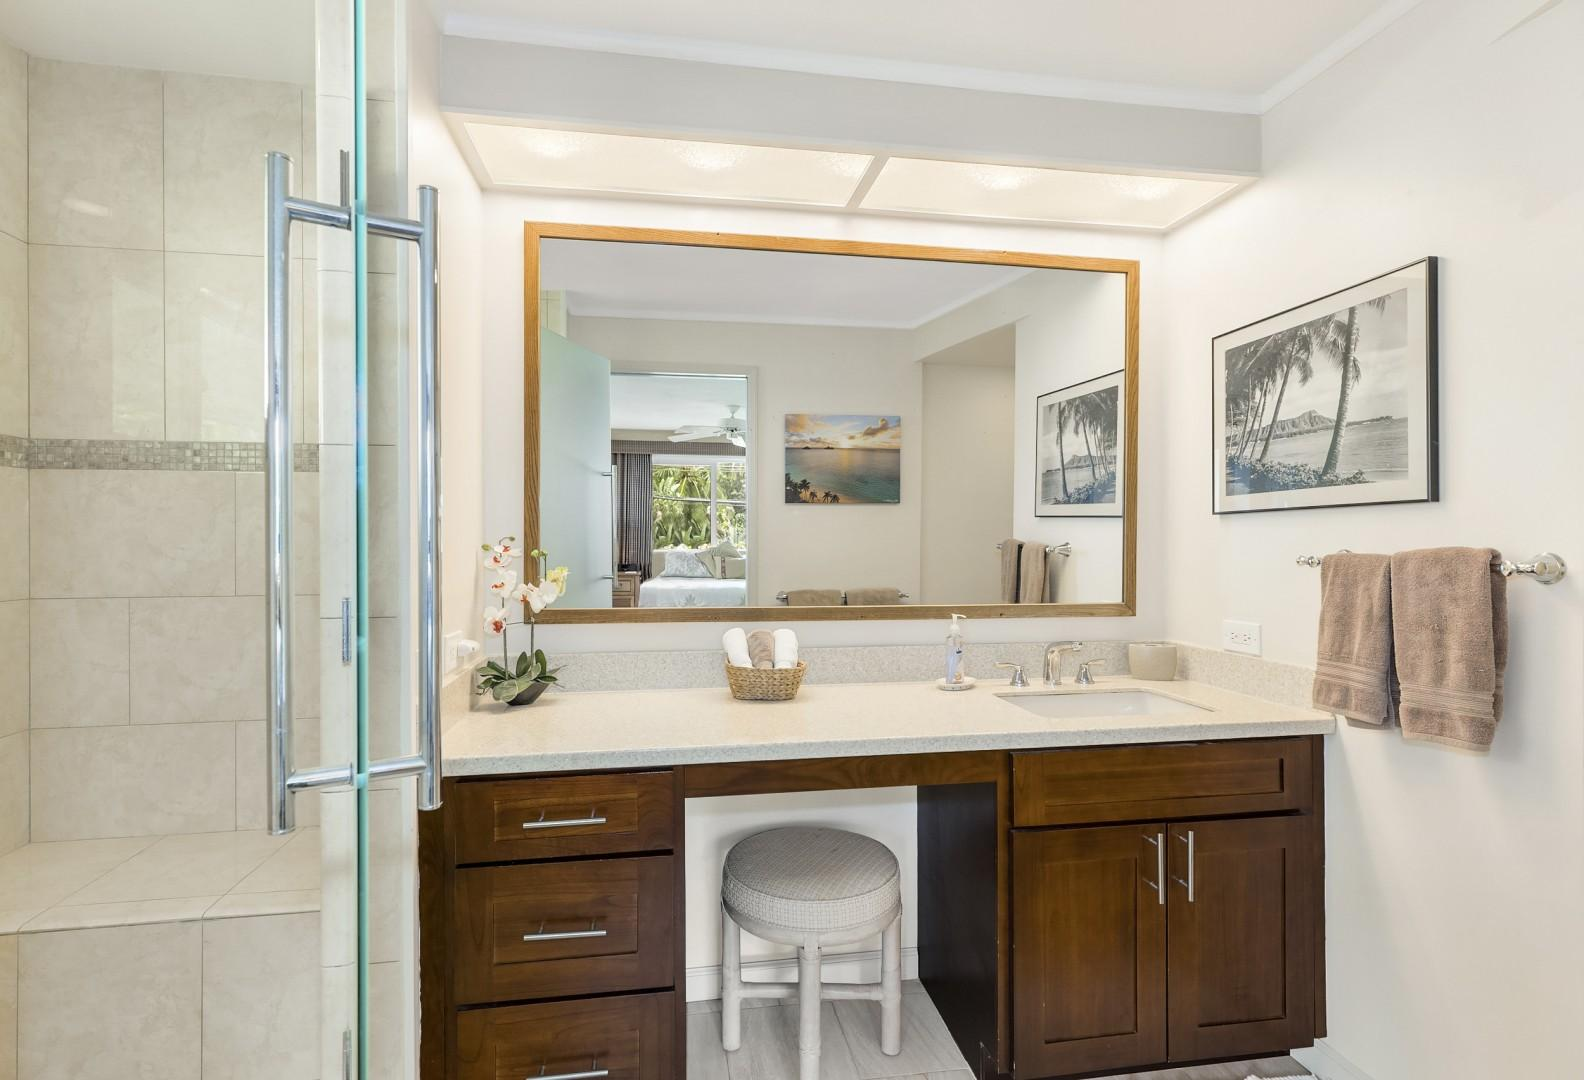 Master bathroom with custom shower and vanity area.